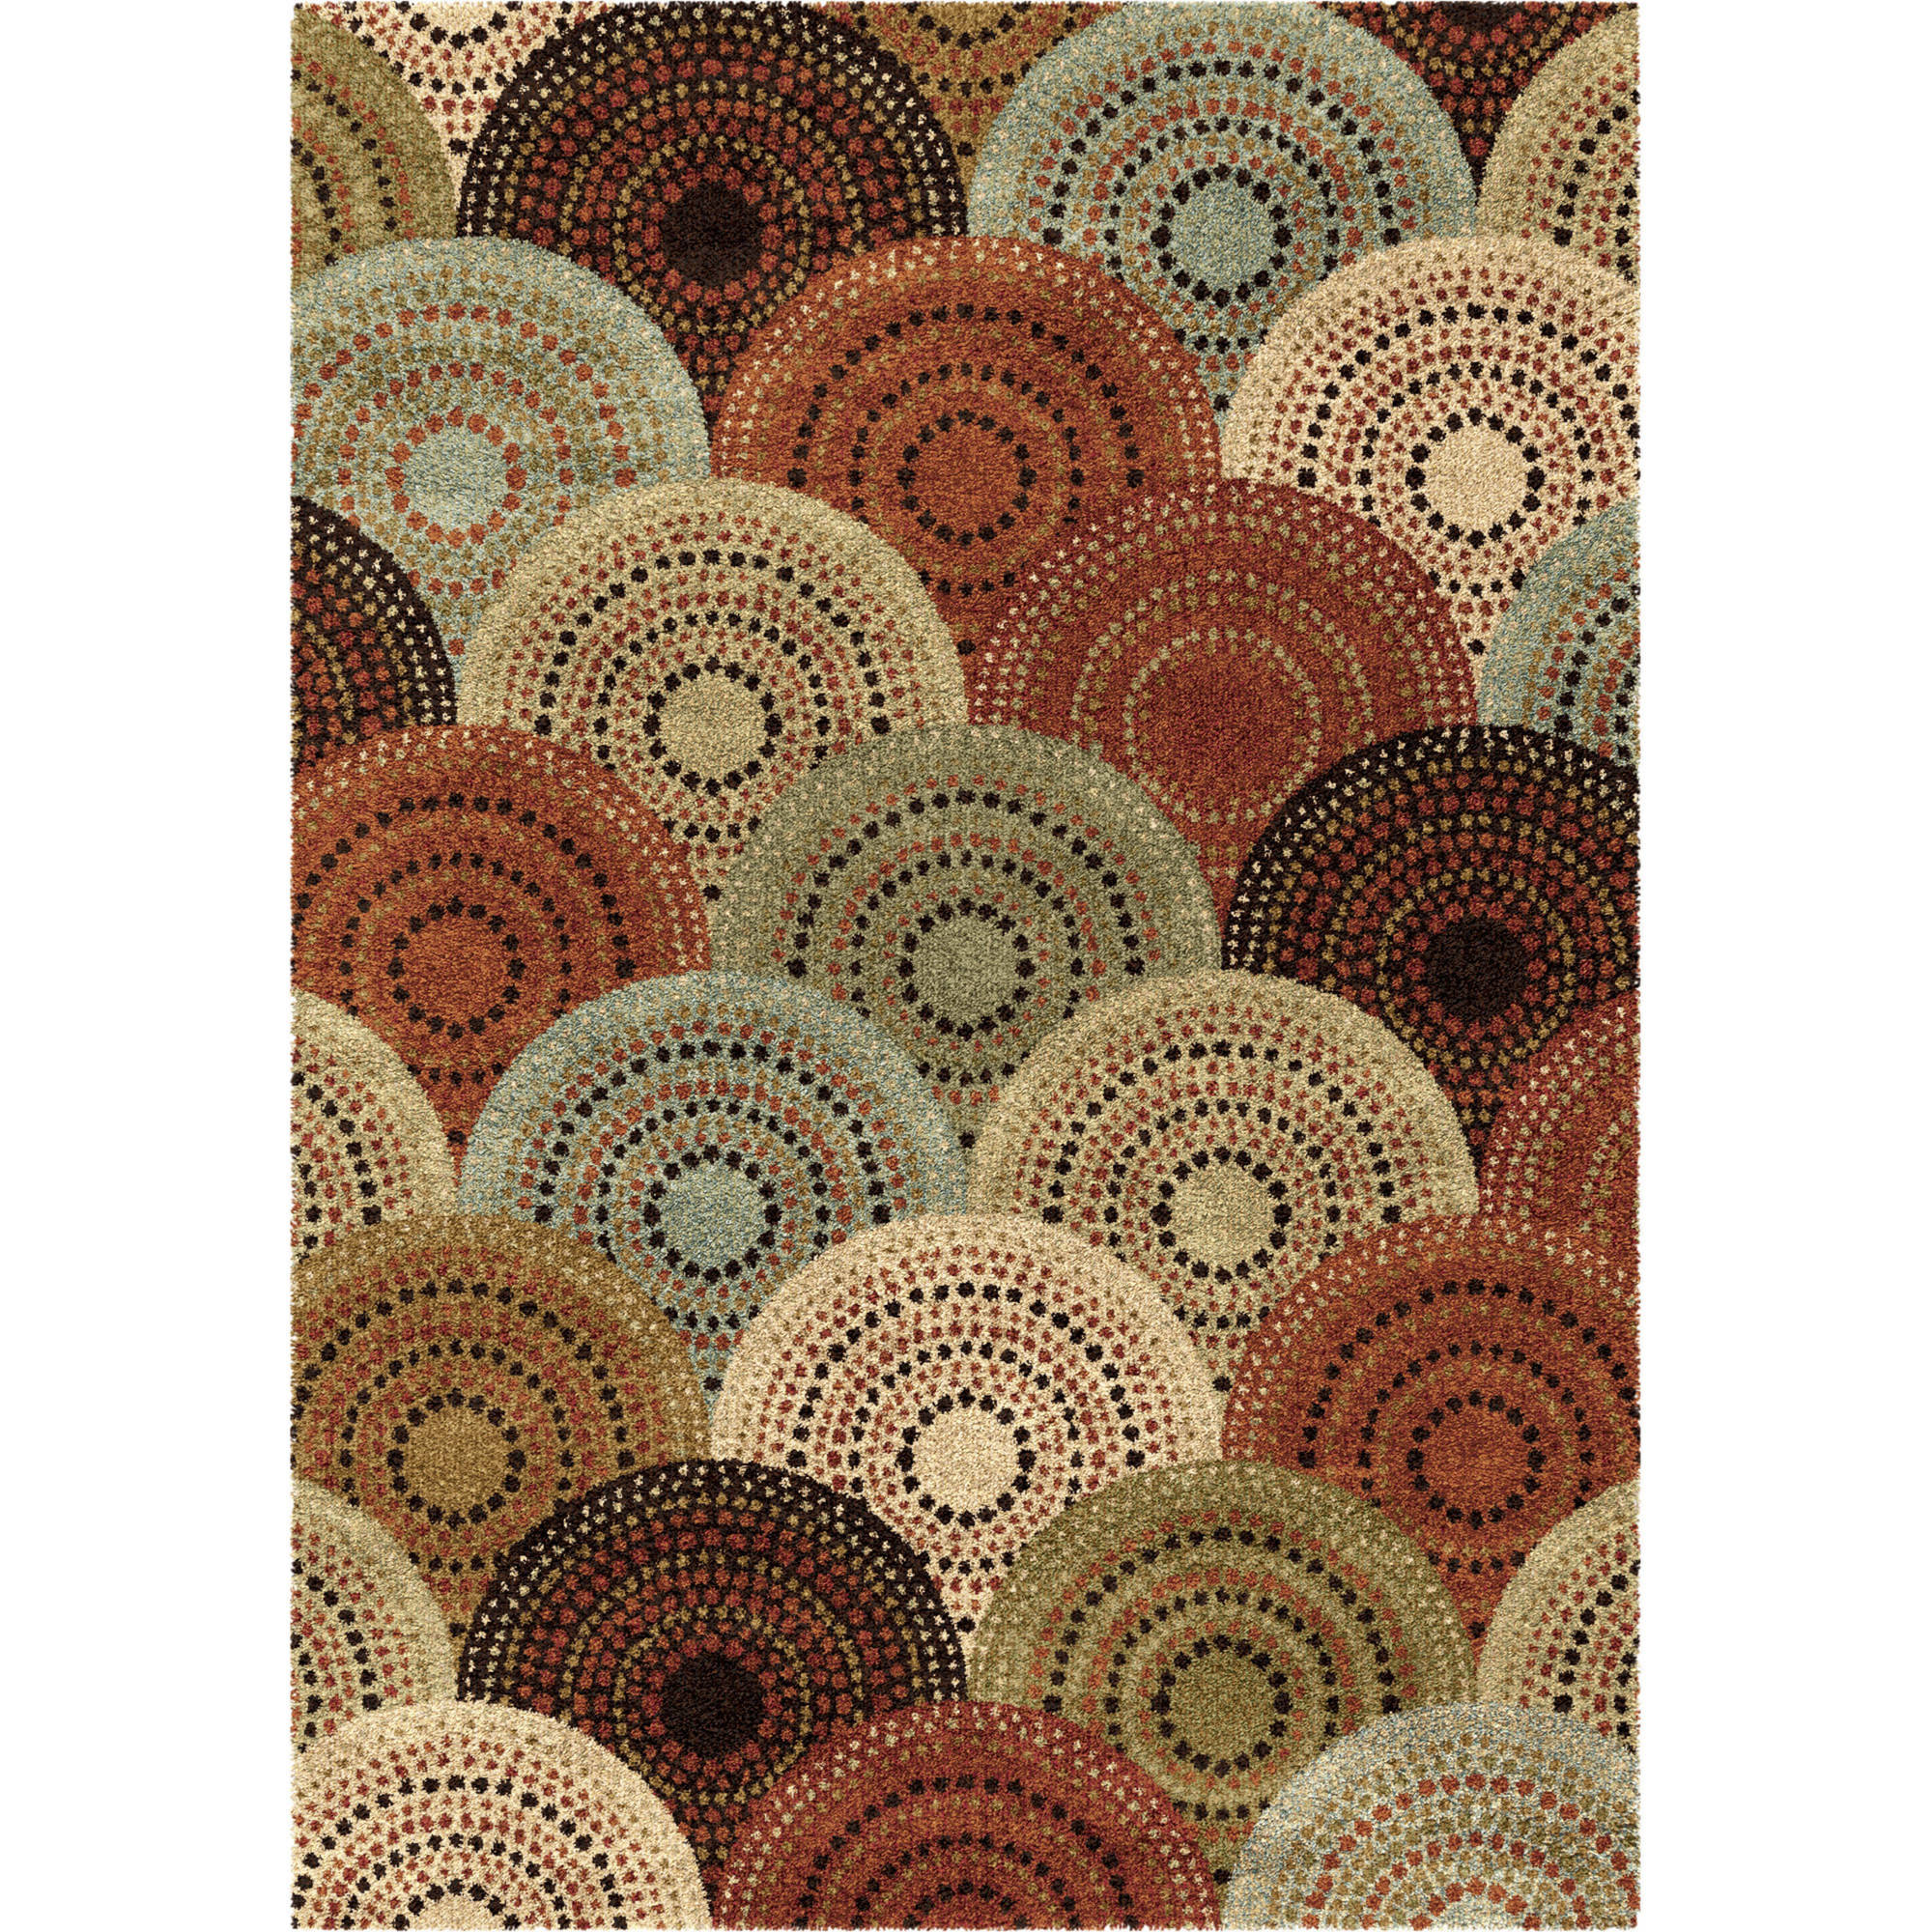 Better Homes And Gardens Spice Dotted Circles Multi Colored Area Rug    Walmart.com